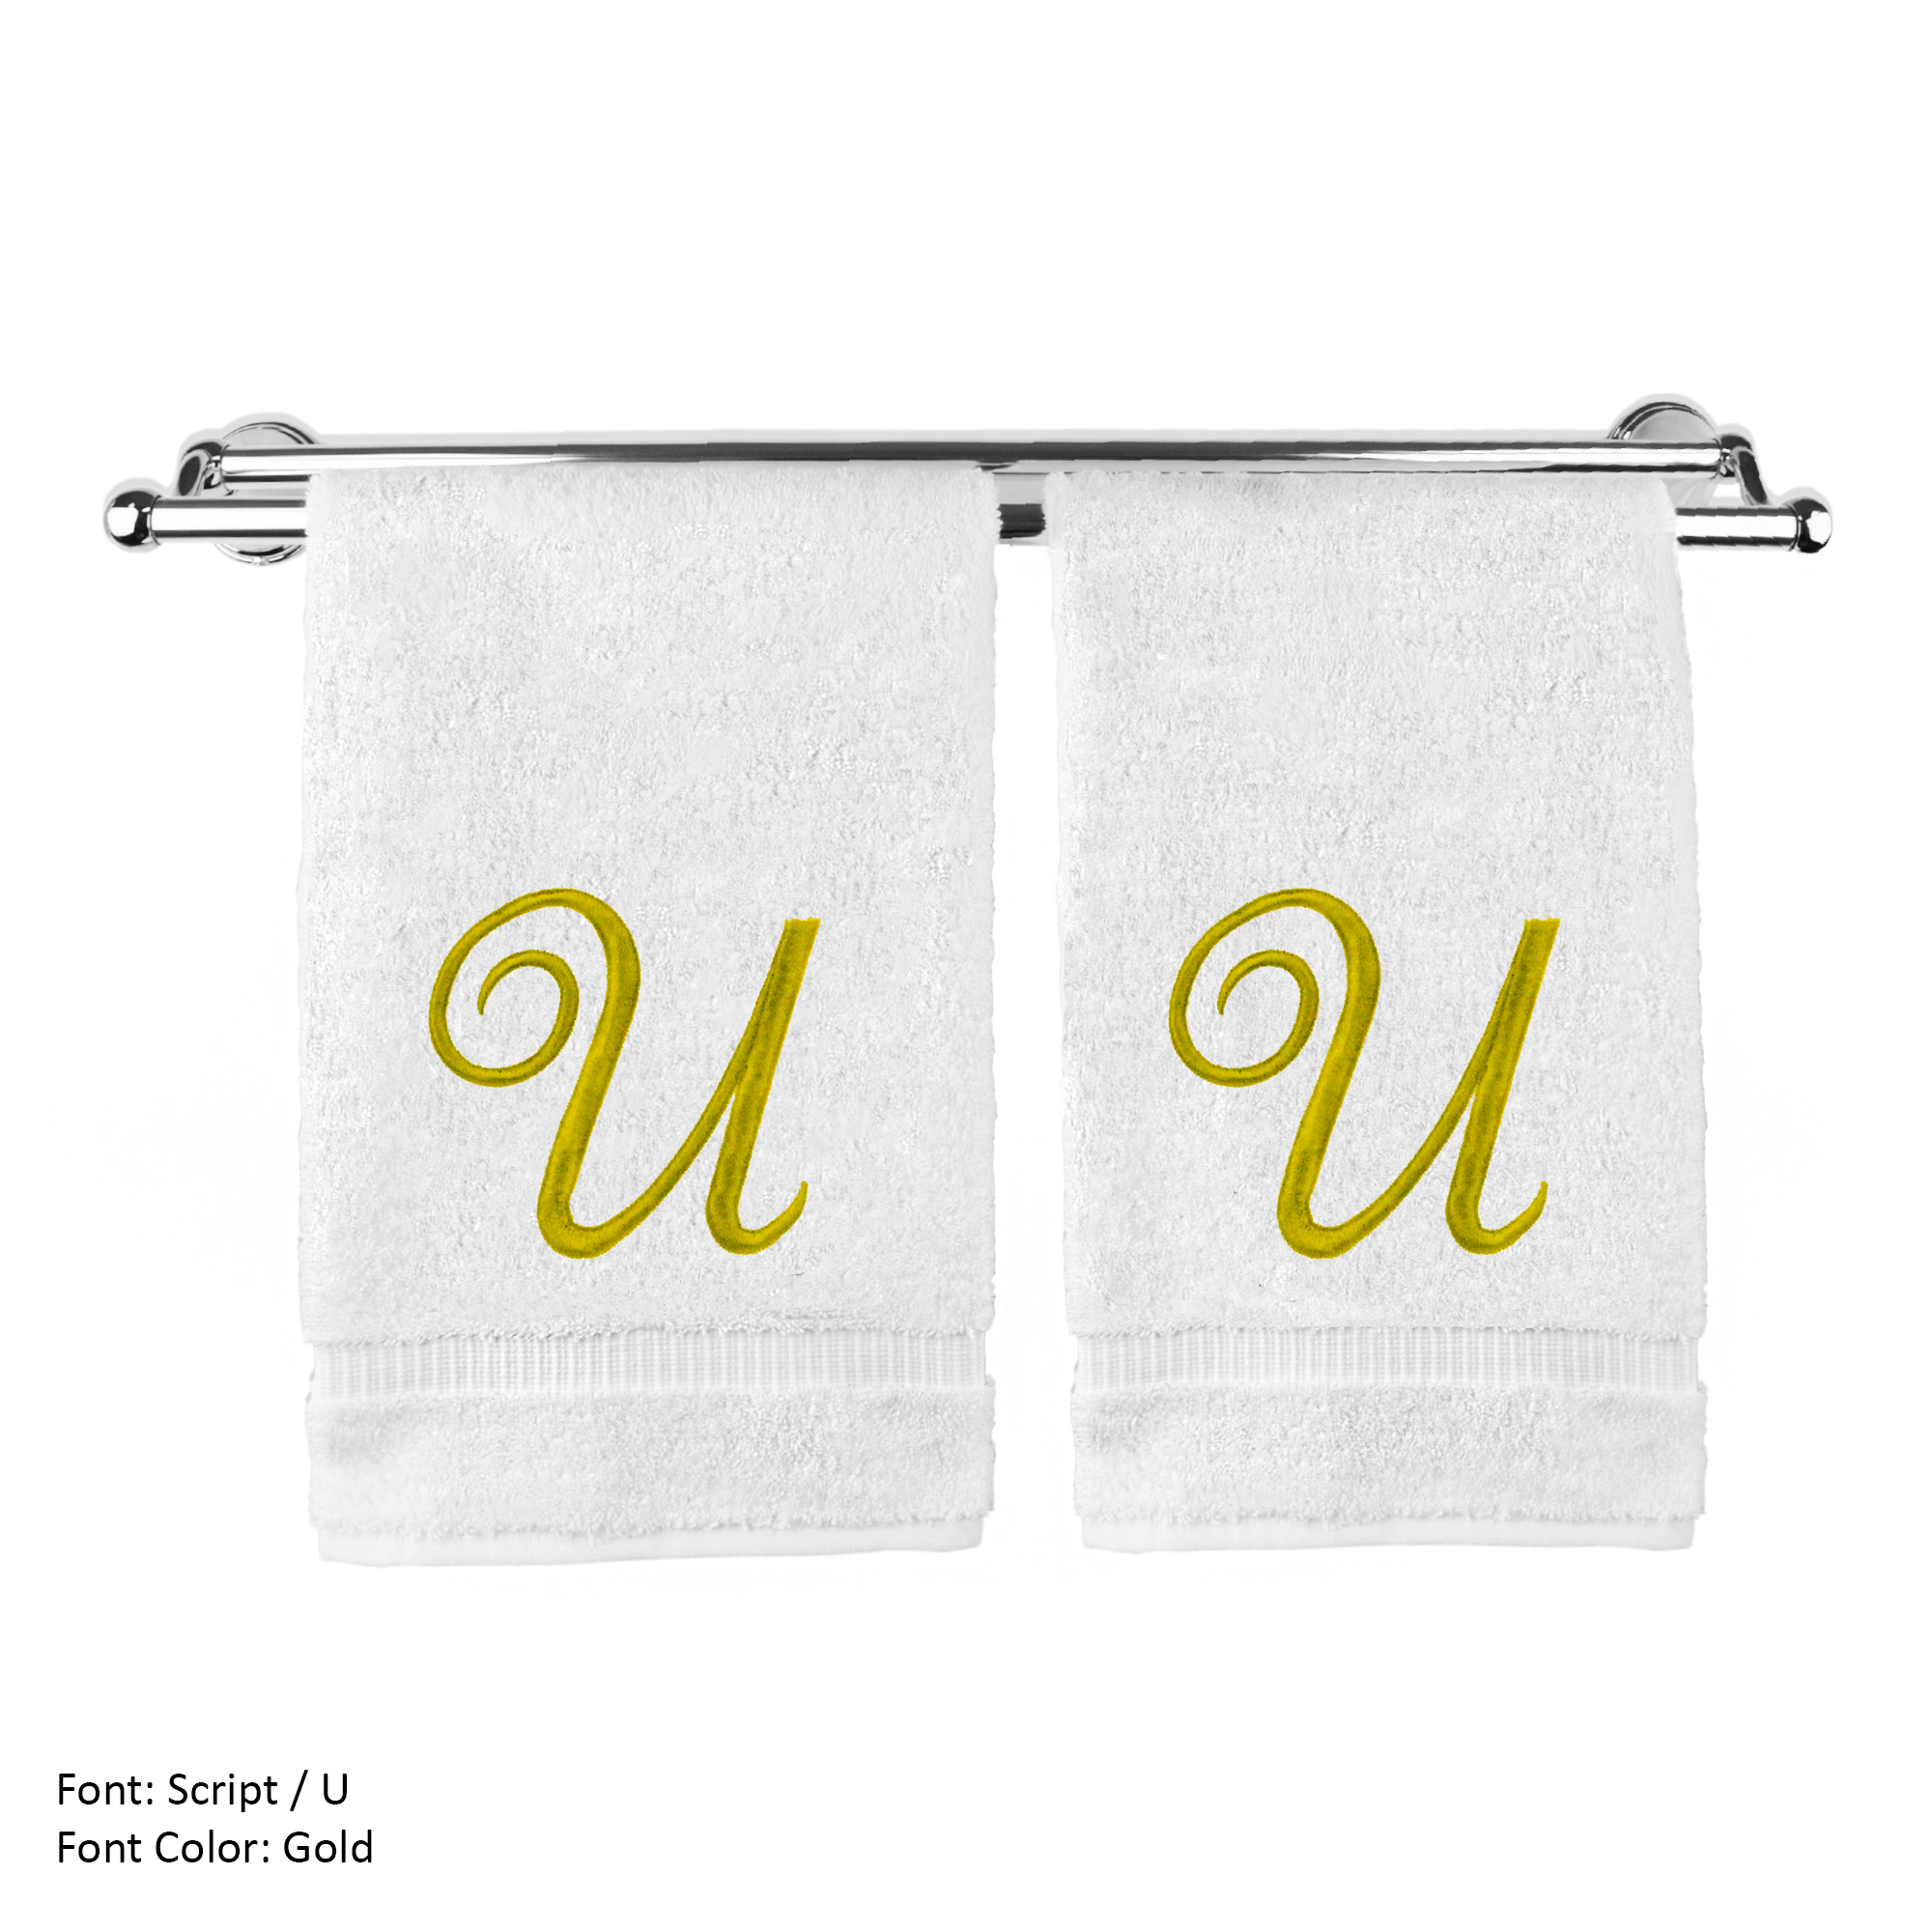 Monogrammed Washcloth Towel, Personalized Gift, 13x13 Inches - Set of 2 - Gold Script Embroidered Towel - Extra Absorbent 100% Turkish Cotton - Soft Terry Finish - Initial U White